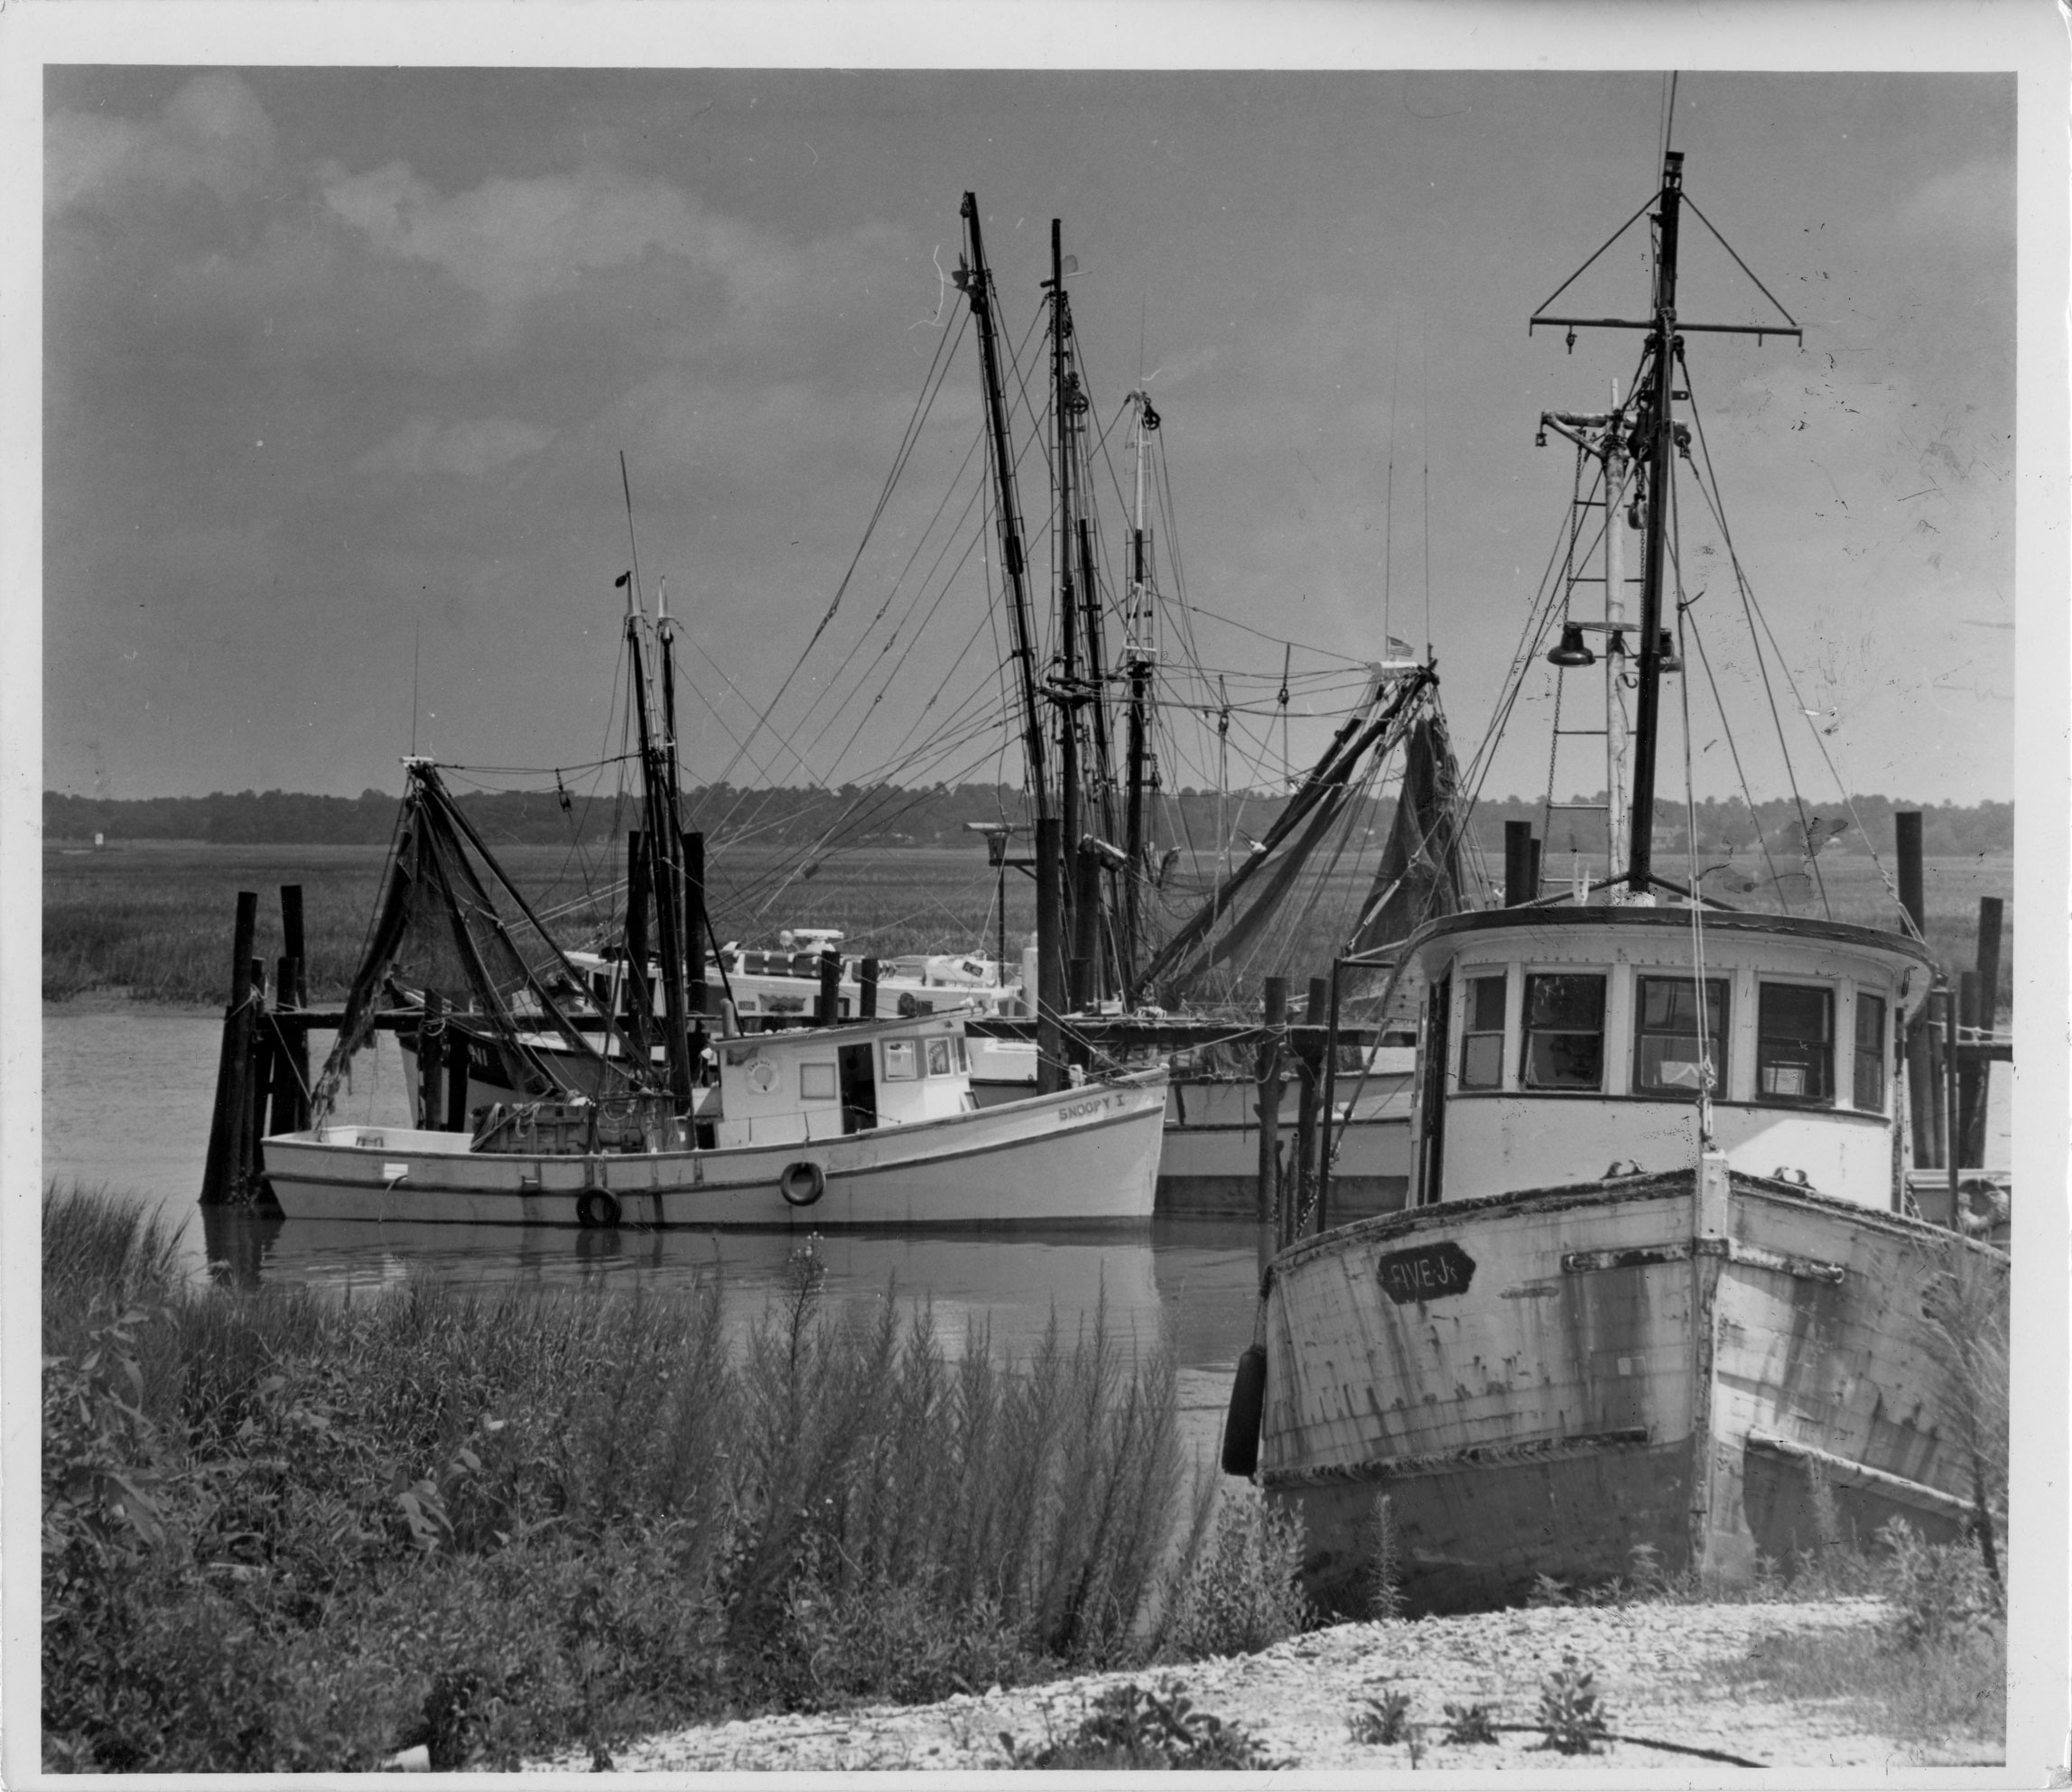 Four shrimp boats: